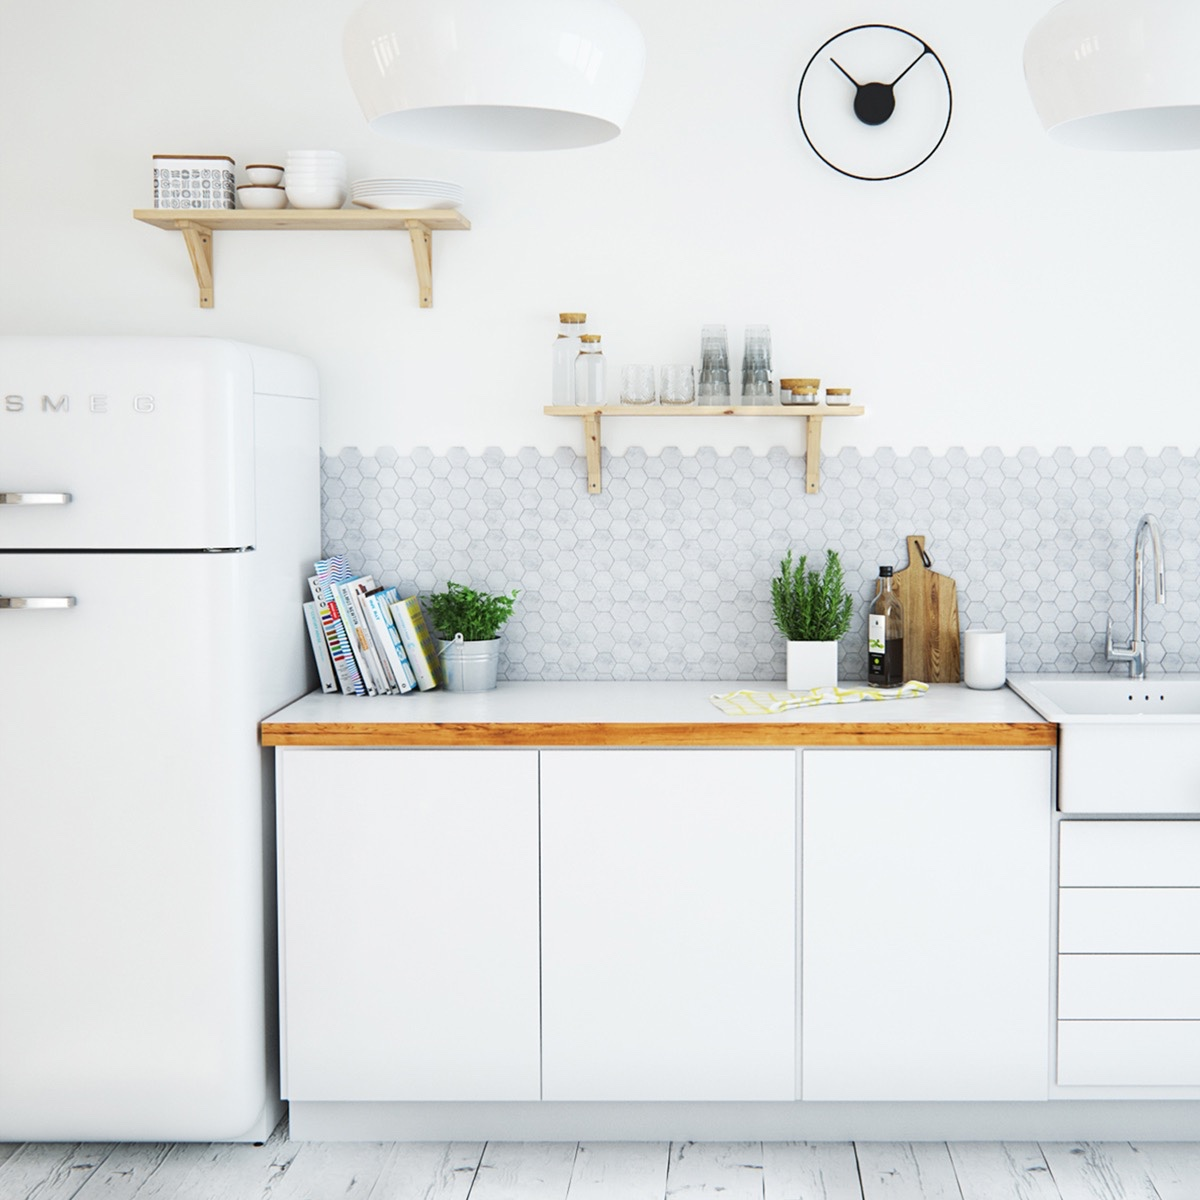 Scandinavian kitchens ideas inspiration assess myhome for Scandinavian kitchen backsplash